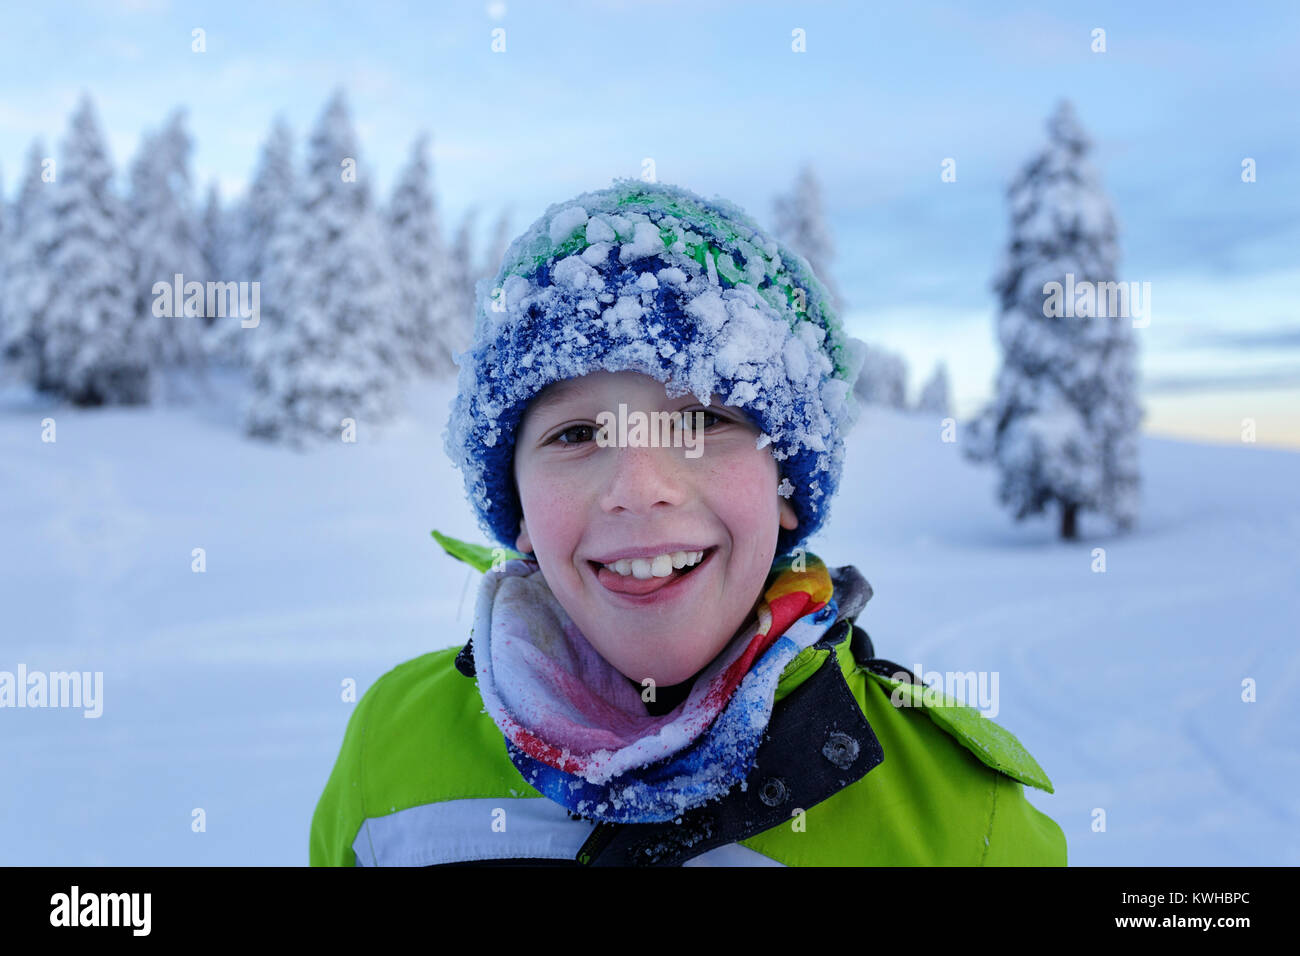 Portrait of a smiling young boy with his face and beanie covered with snow after winter playing on a mountain with - Stock Image